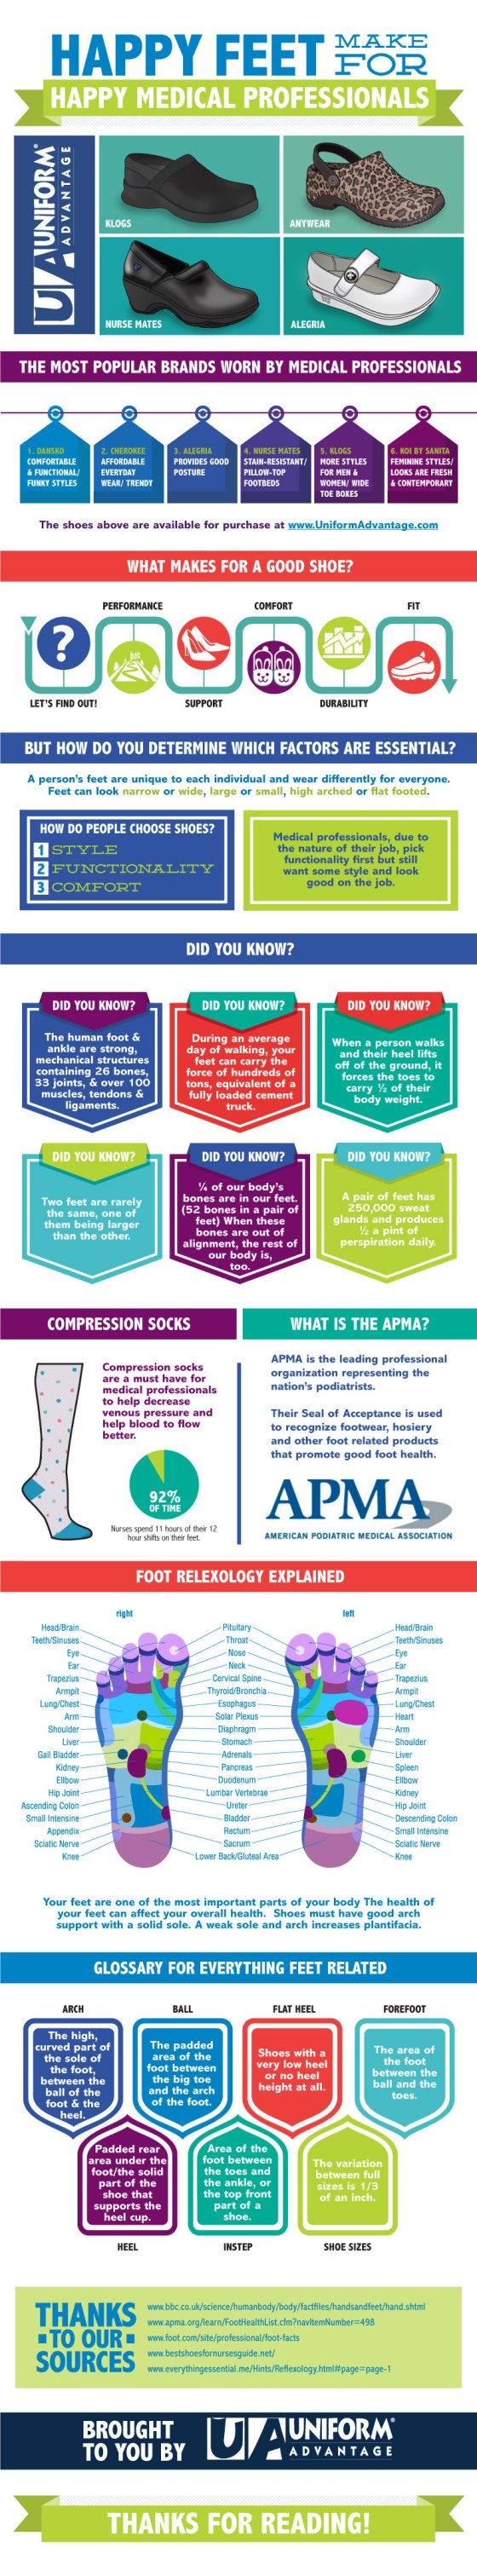 Infographic : Happy Feet makes Happy Healthcare Professionals